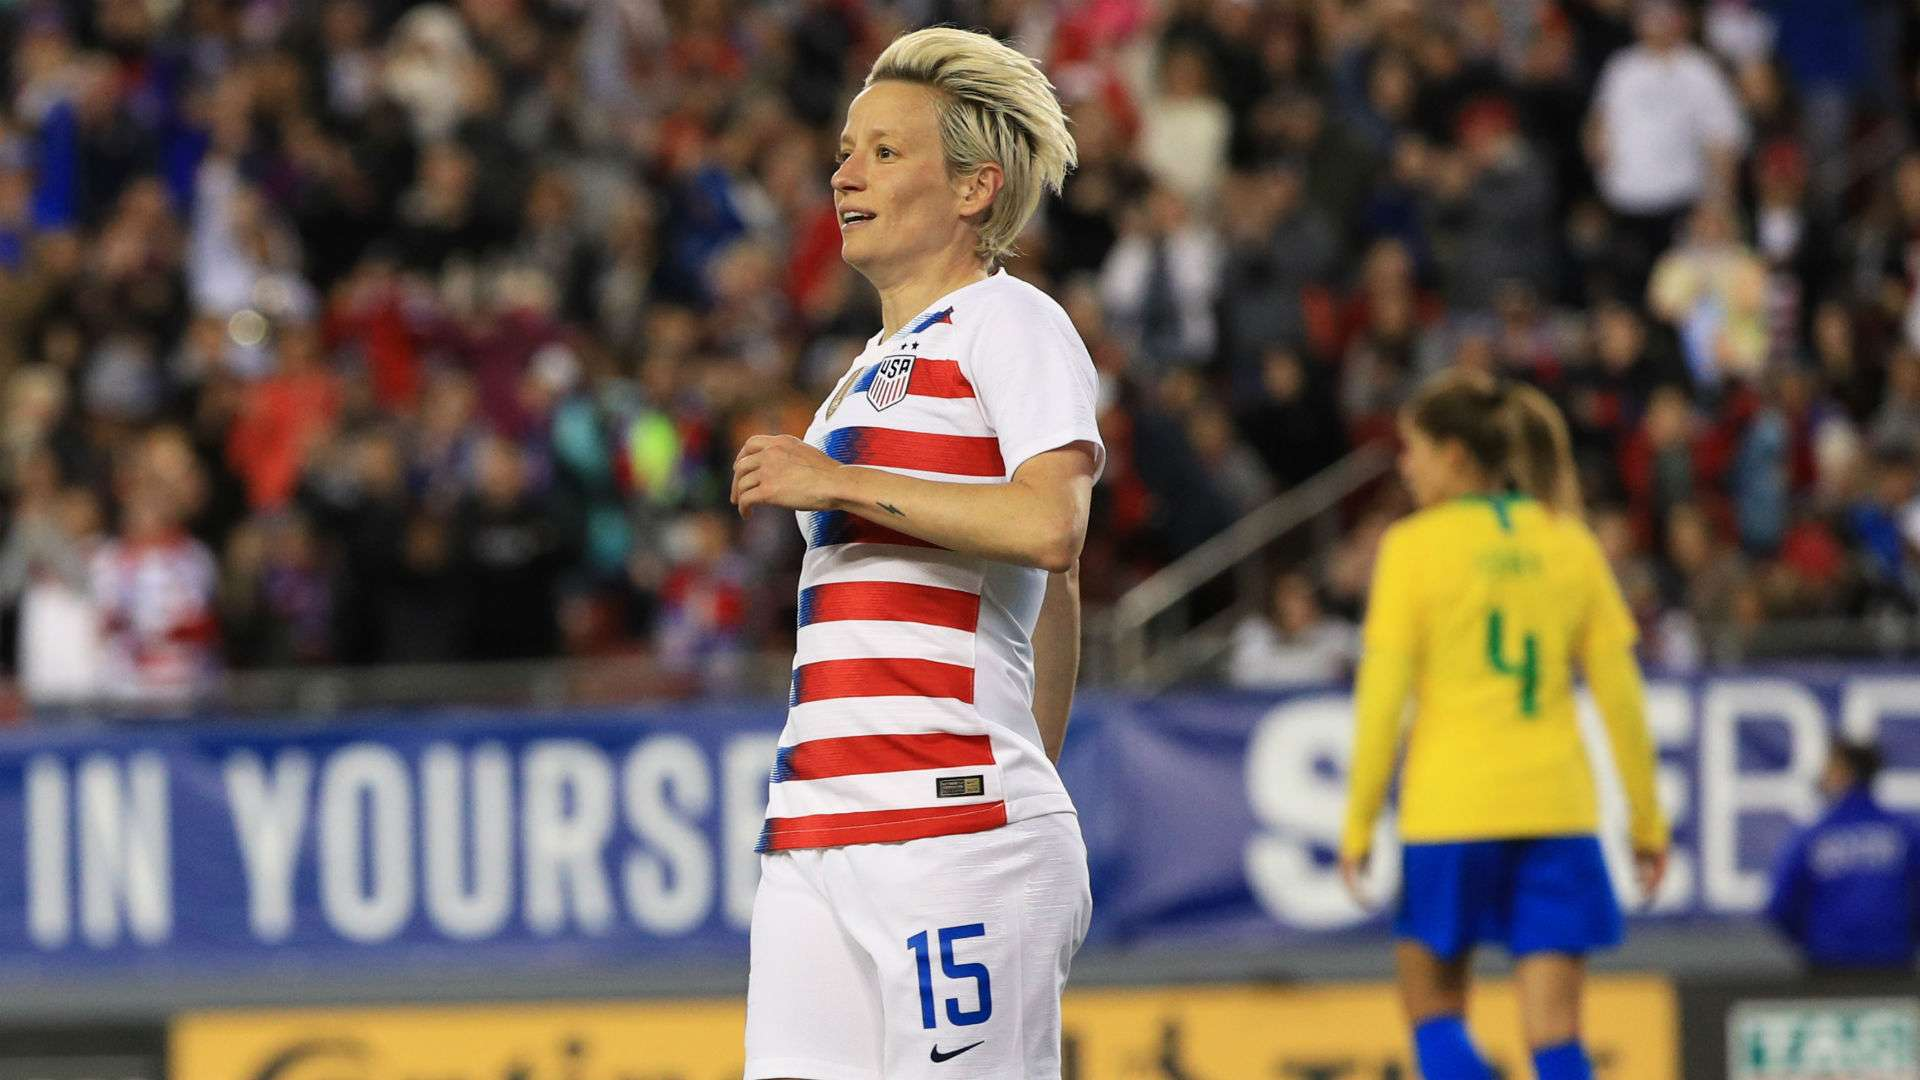 USWNT: Peaked too soon? Questions remain after lackluster